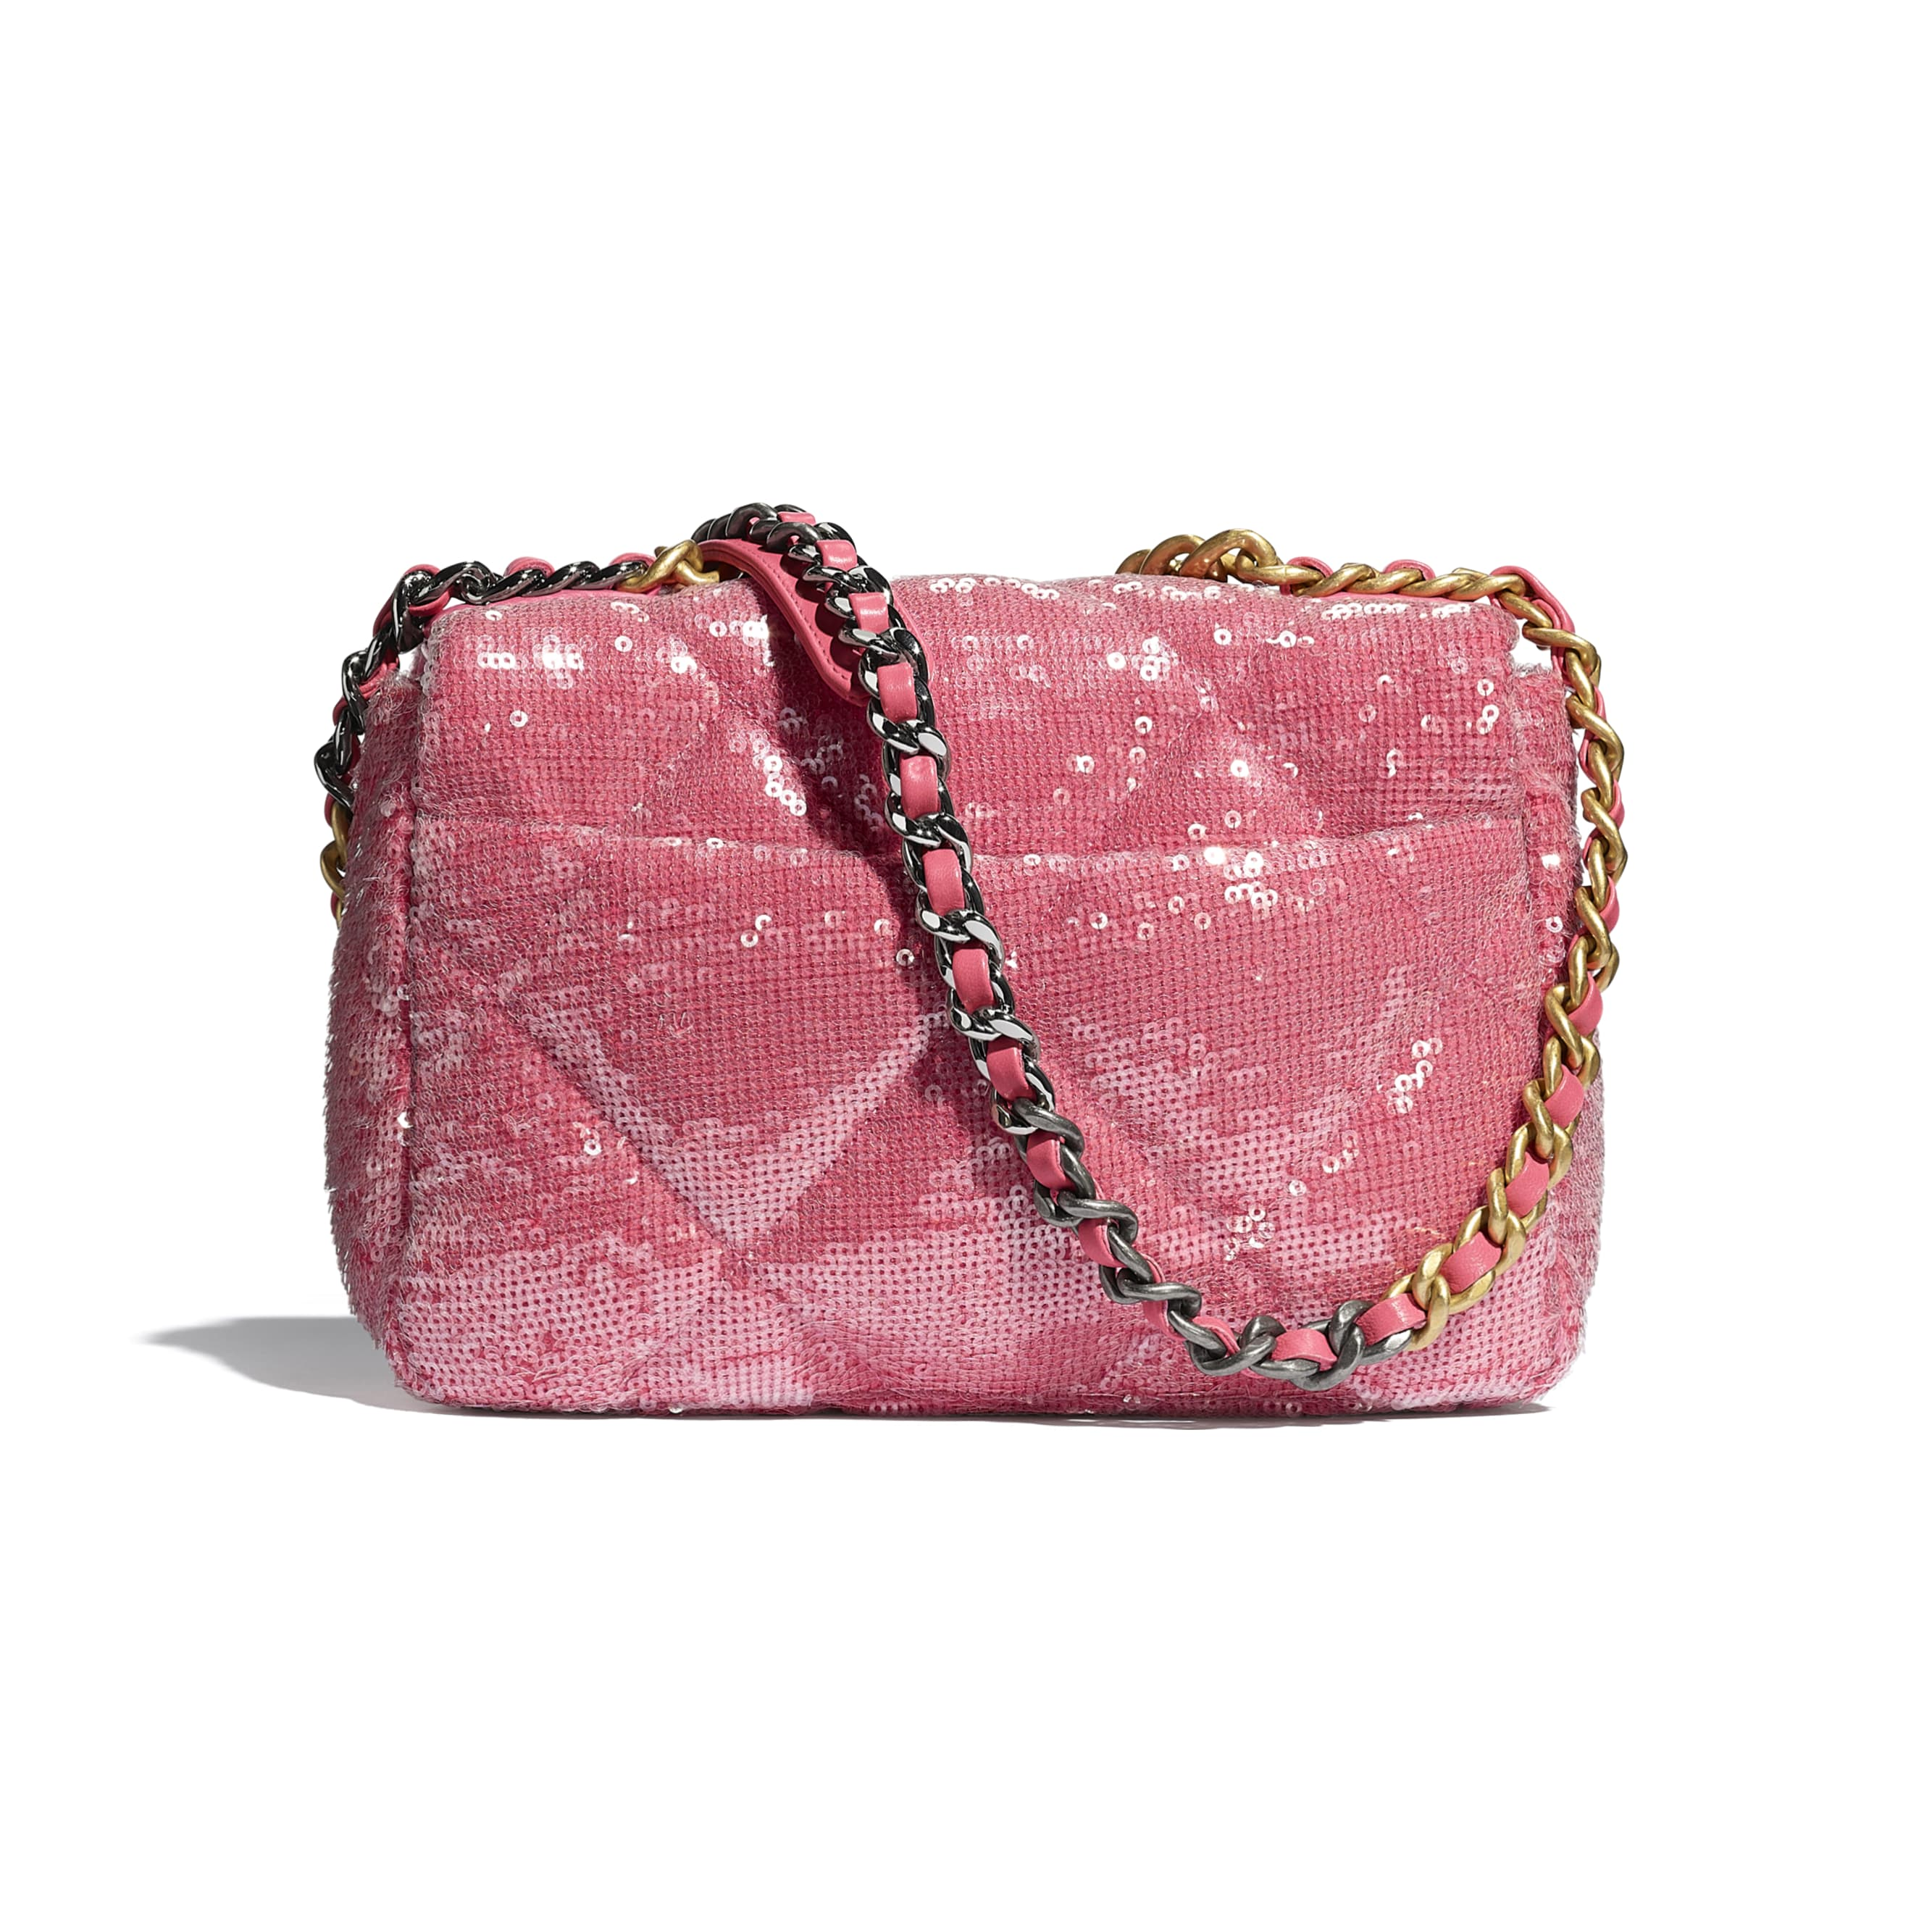 CHANEL 19 Handbag - Coral - Sequins, calfksin, silver-tone & gold-tone metal - CHANEL - Alternative view - see standard sized version